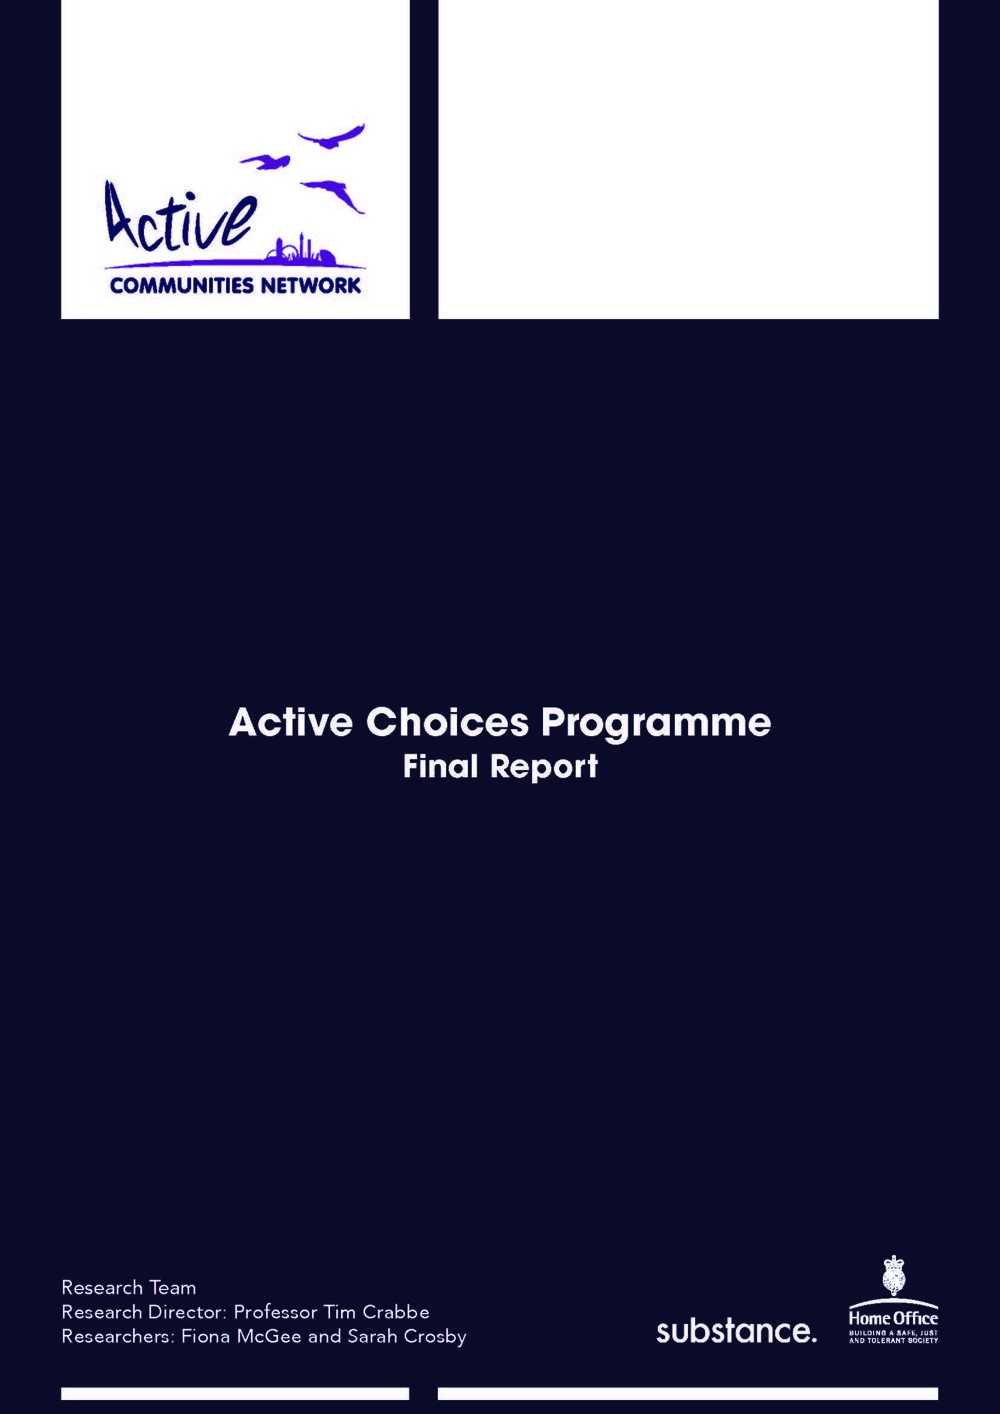 Active choices programme